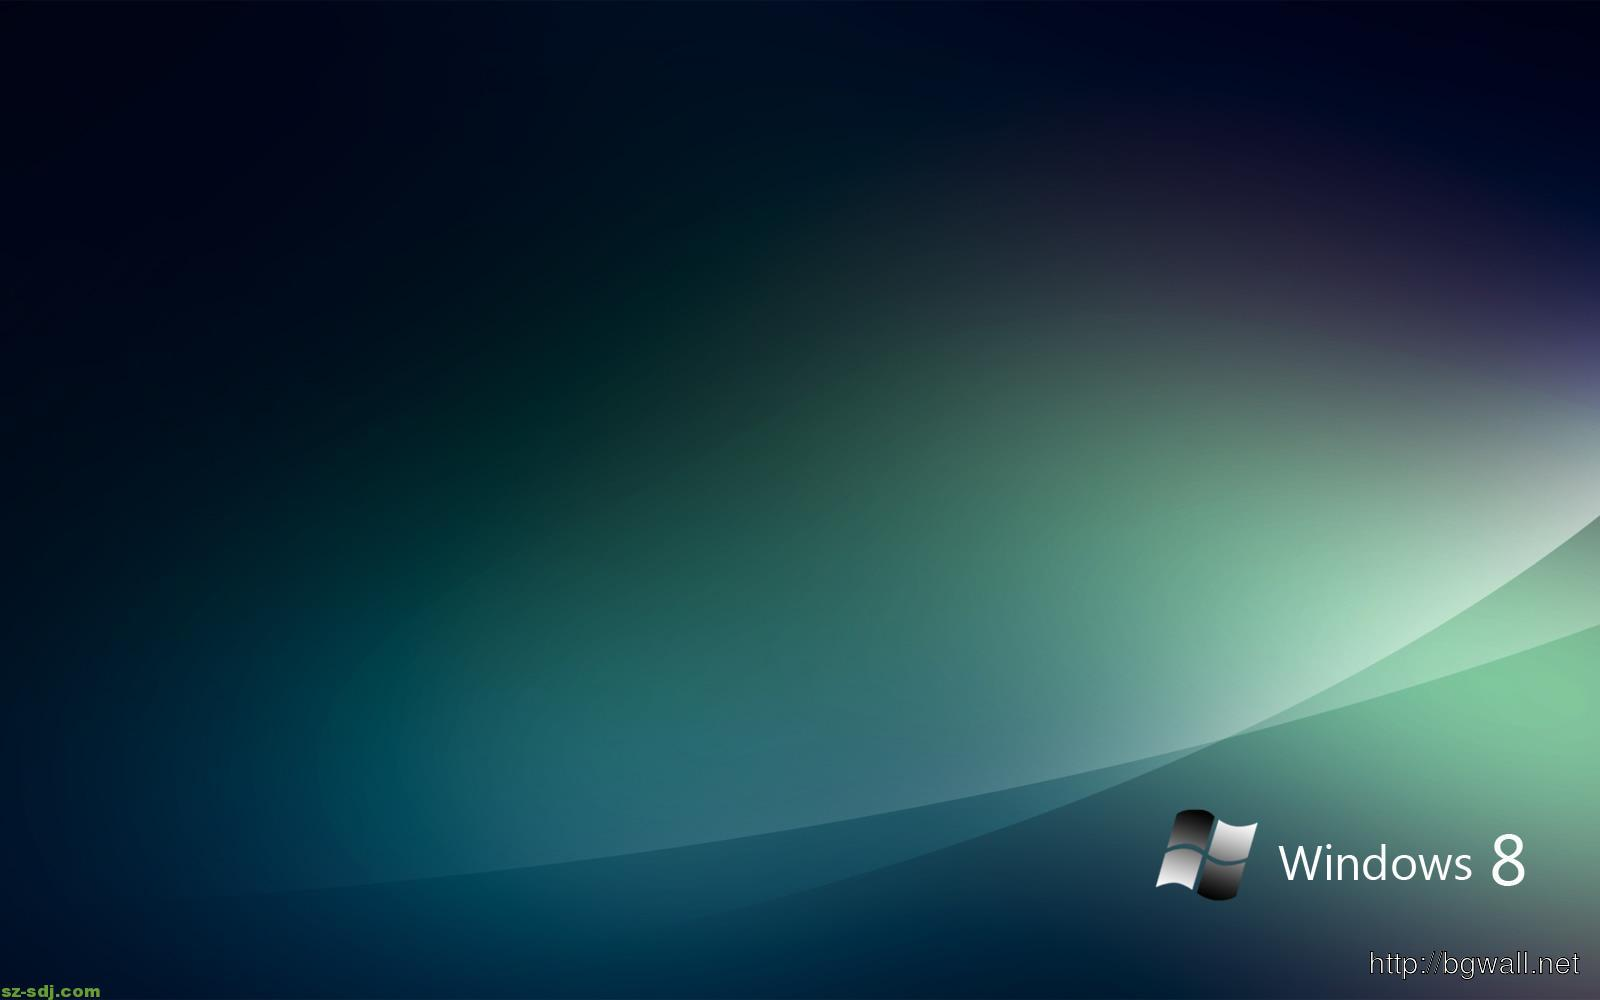 green-windows-8-abstract-wallpaper-picture